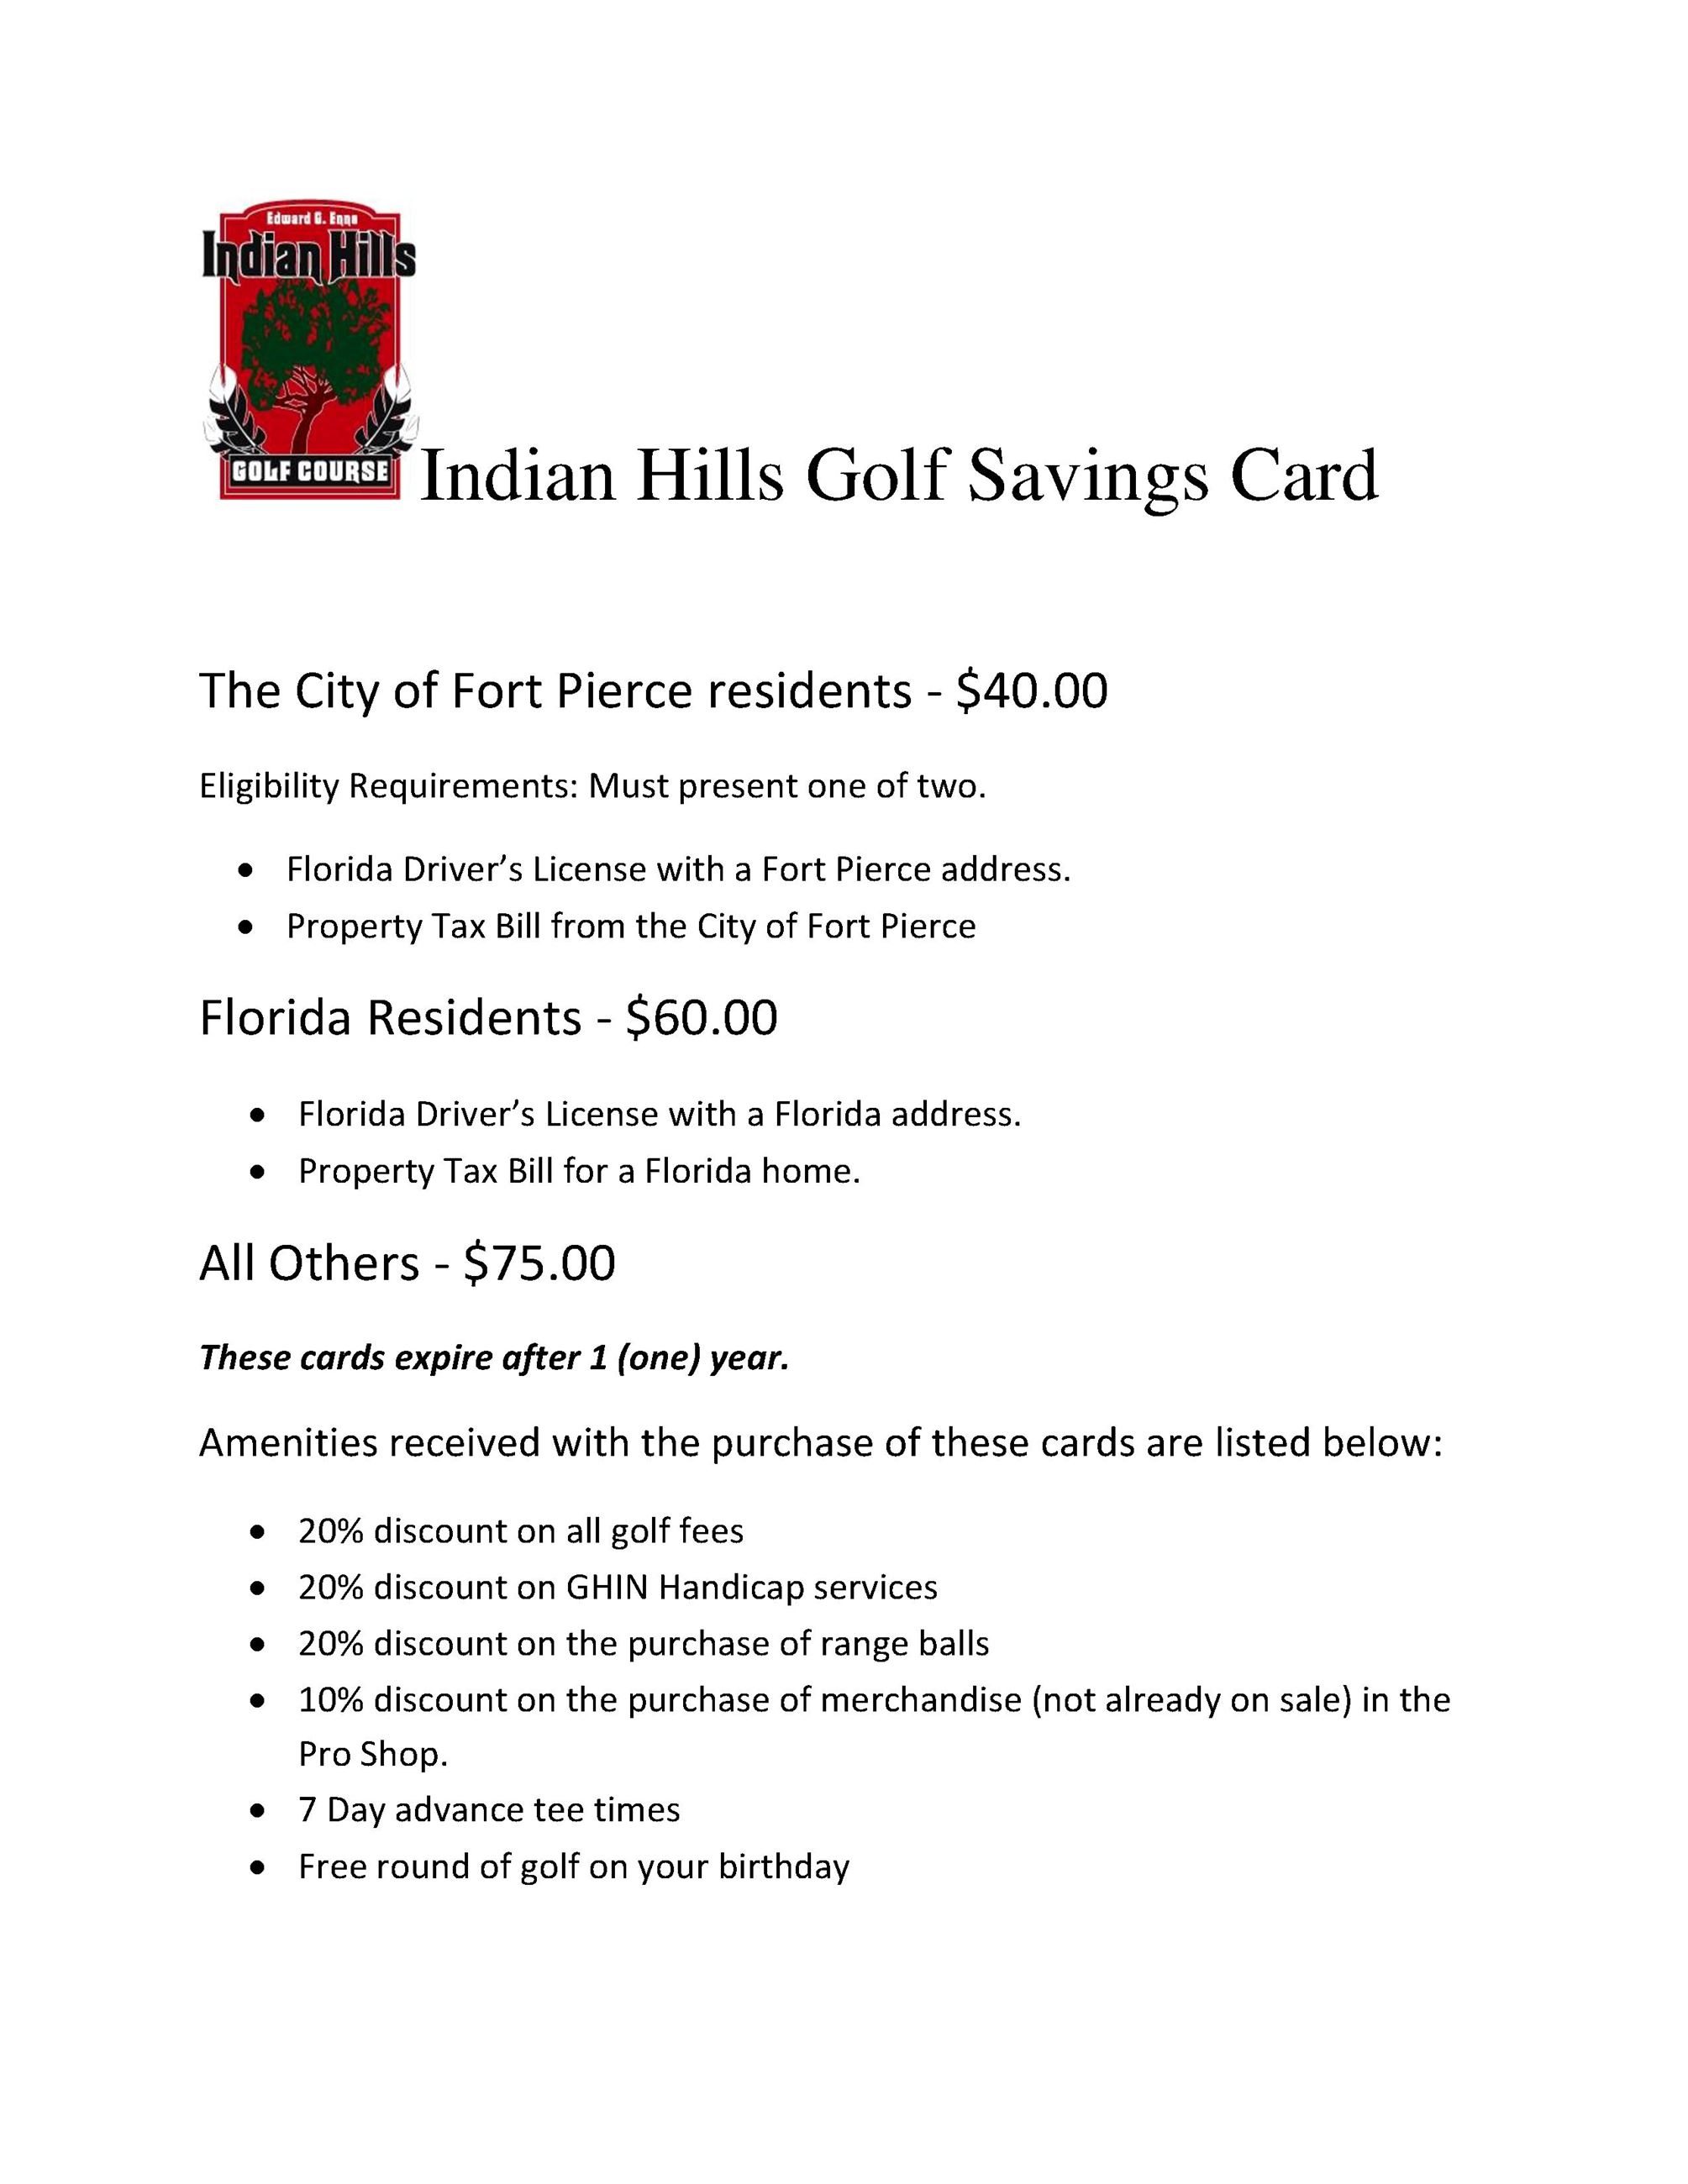 Indian Hills Golf Savings Card (1)